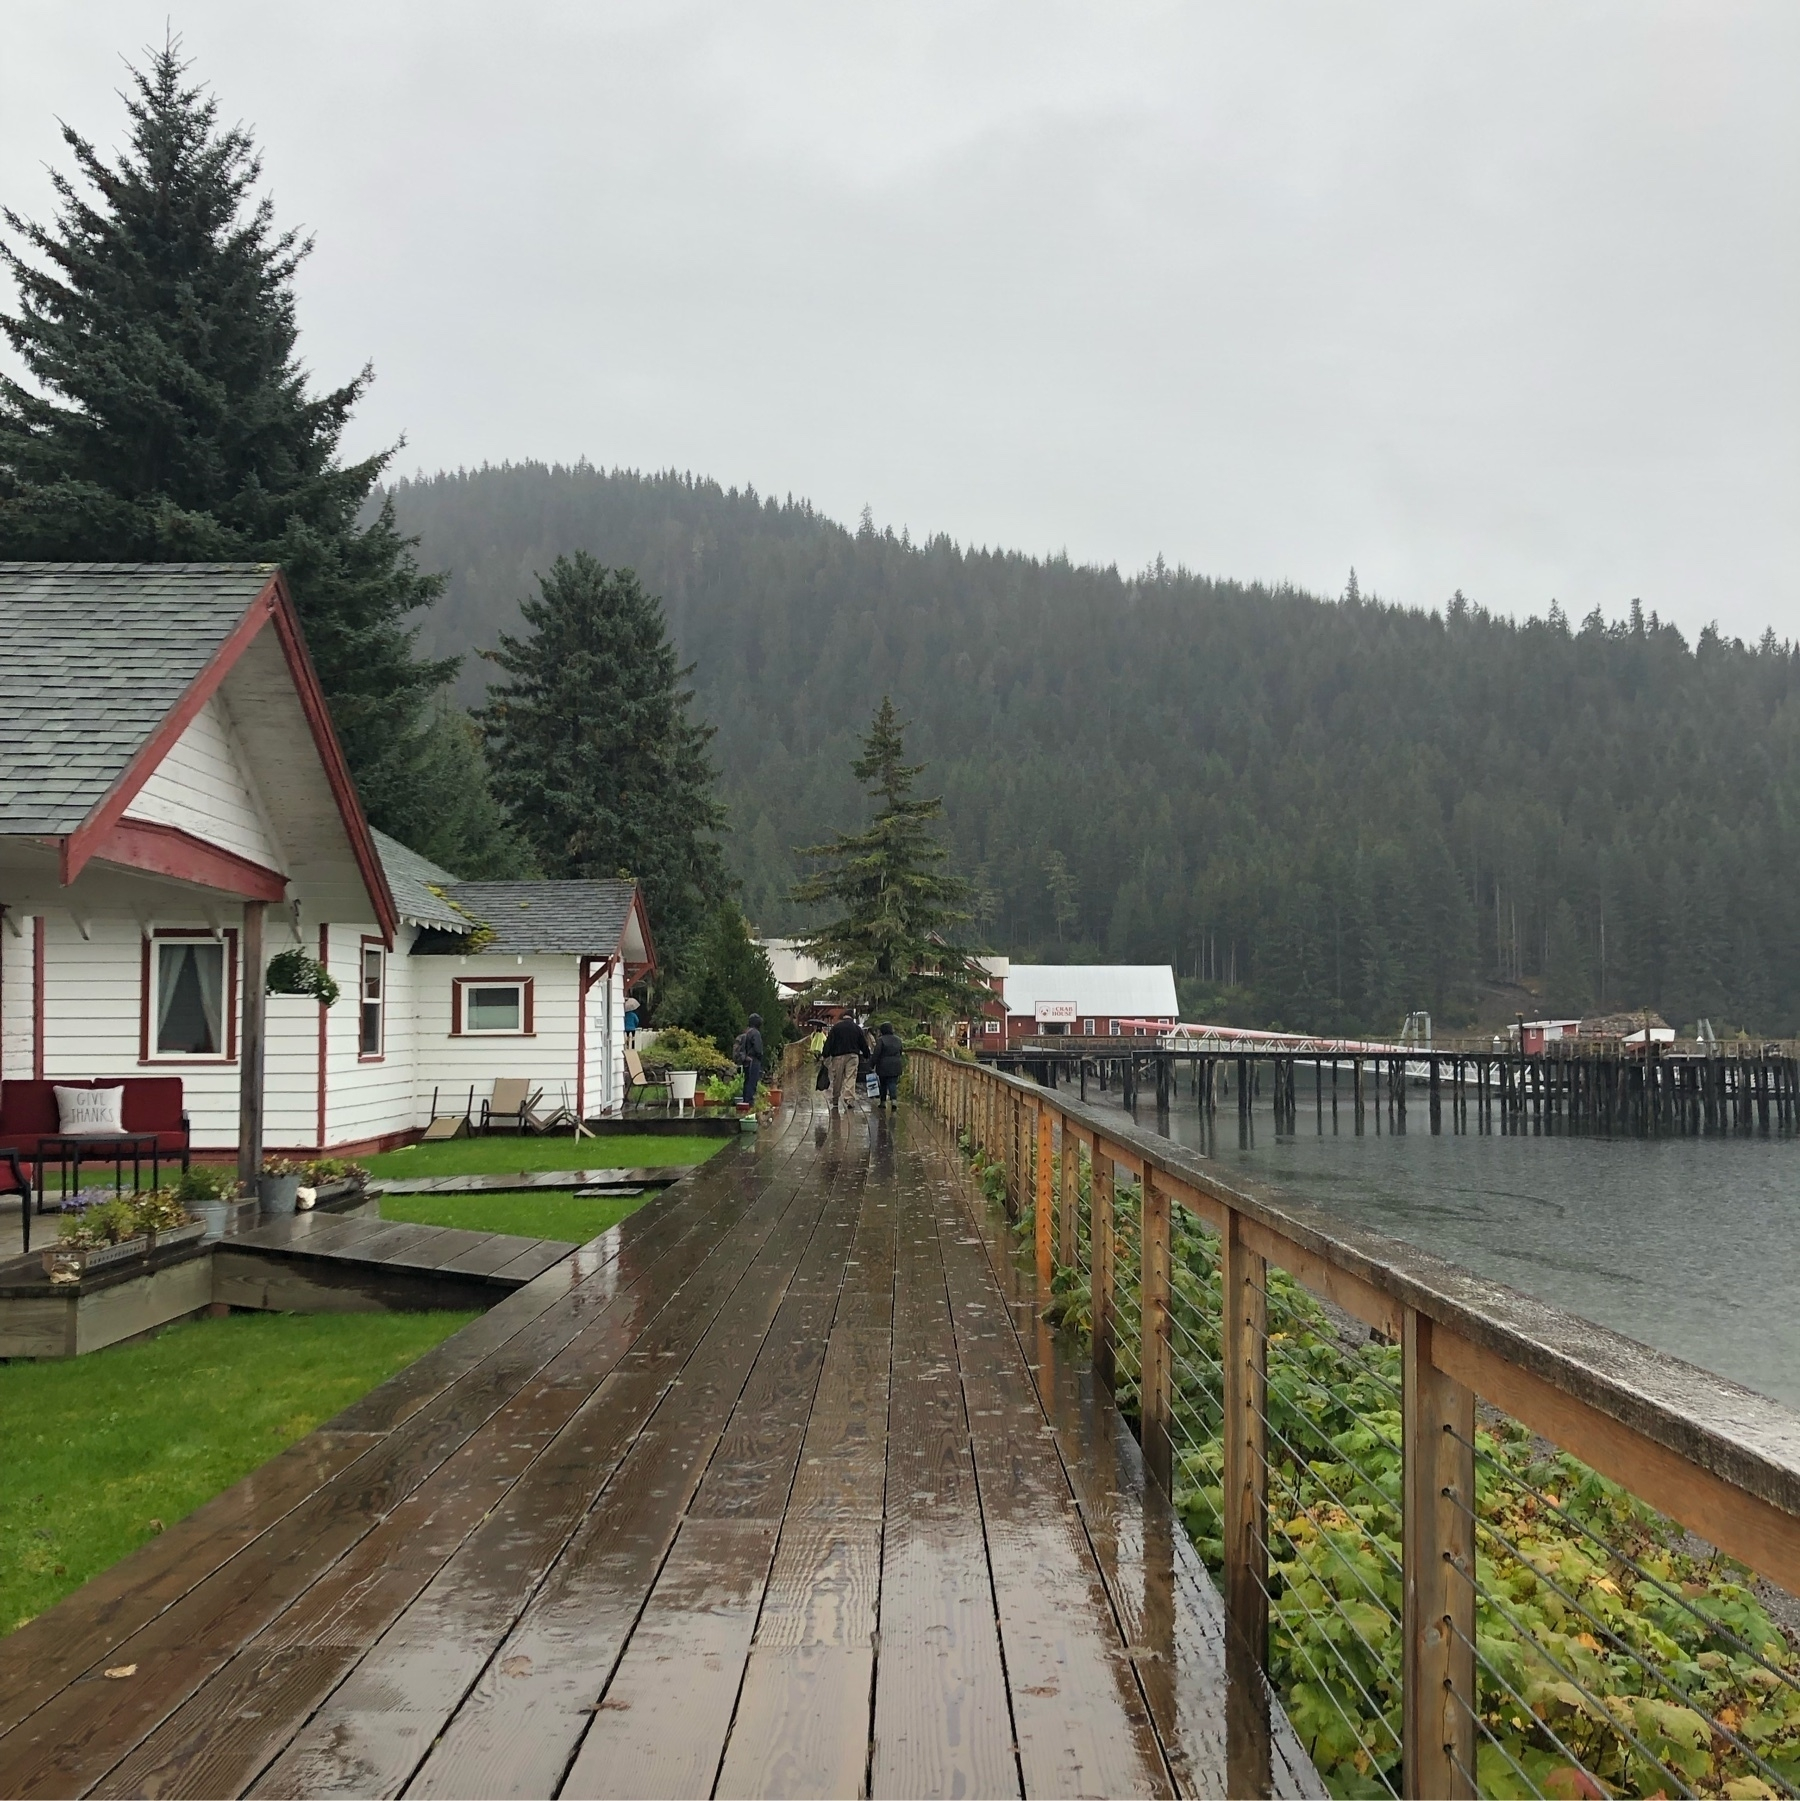 A wet and rainy wooden boardwalk with white bungalows face the water.